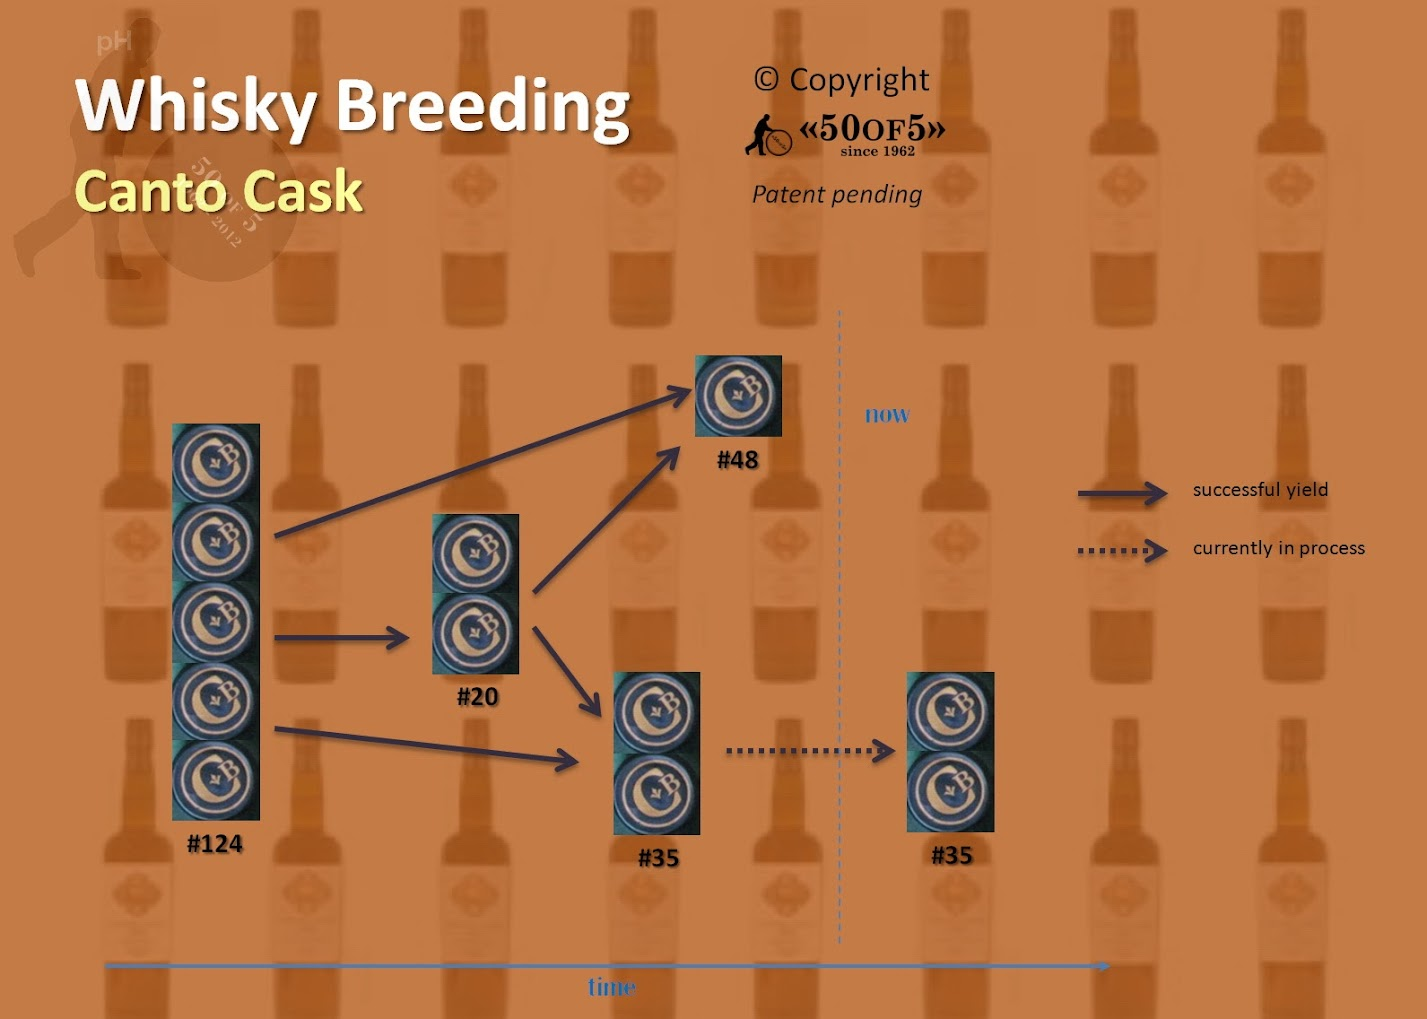 Whisky Breeding - Copyright <<50OF5>>